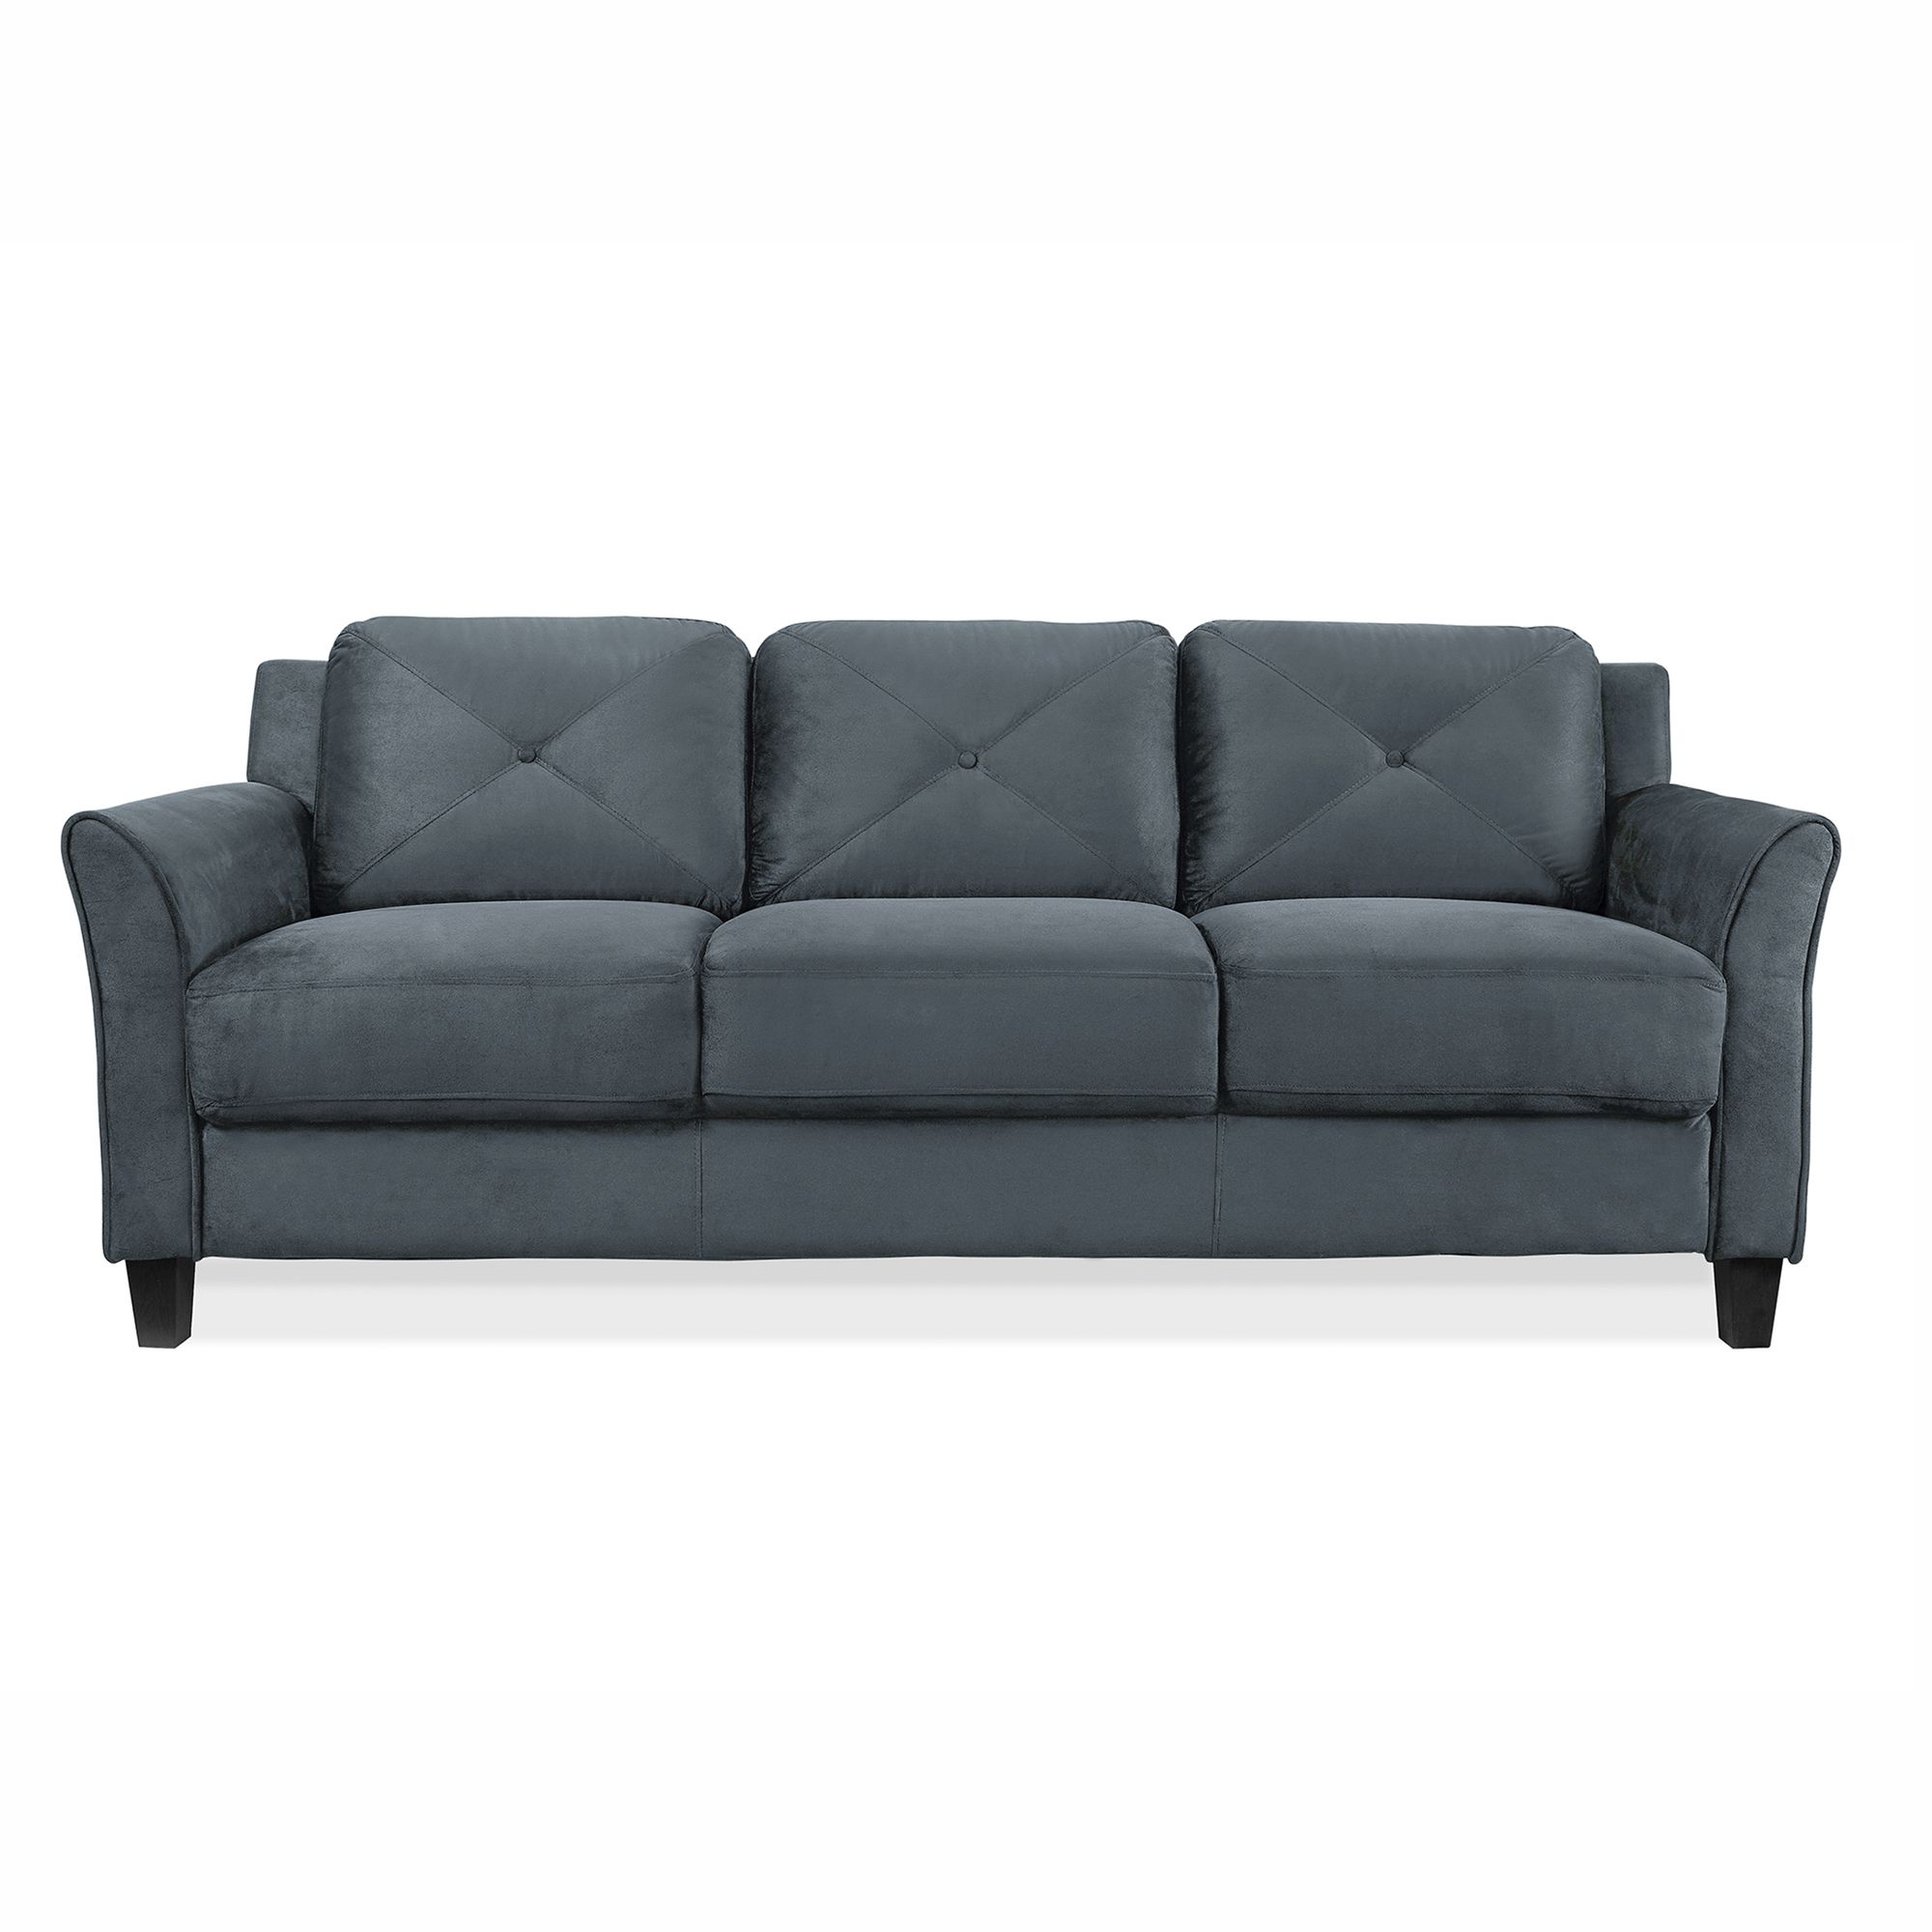 sofas loveseats sectional sofas sleeper sofas bed bath